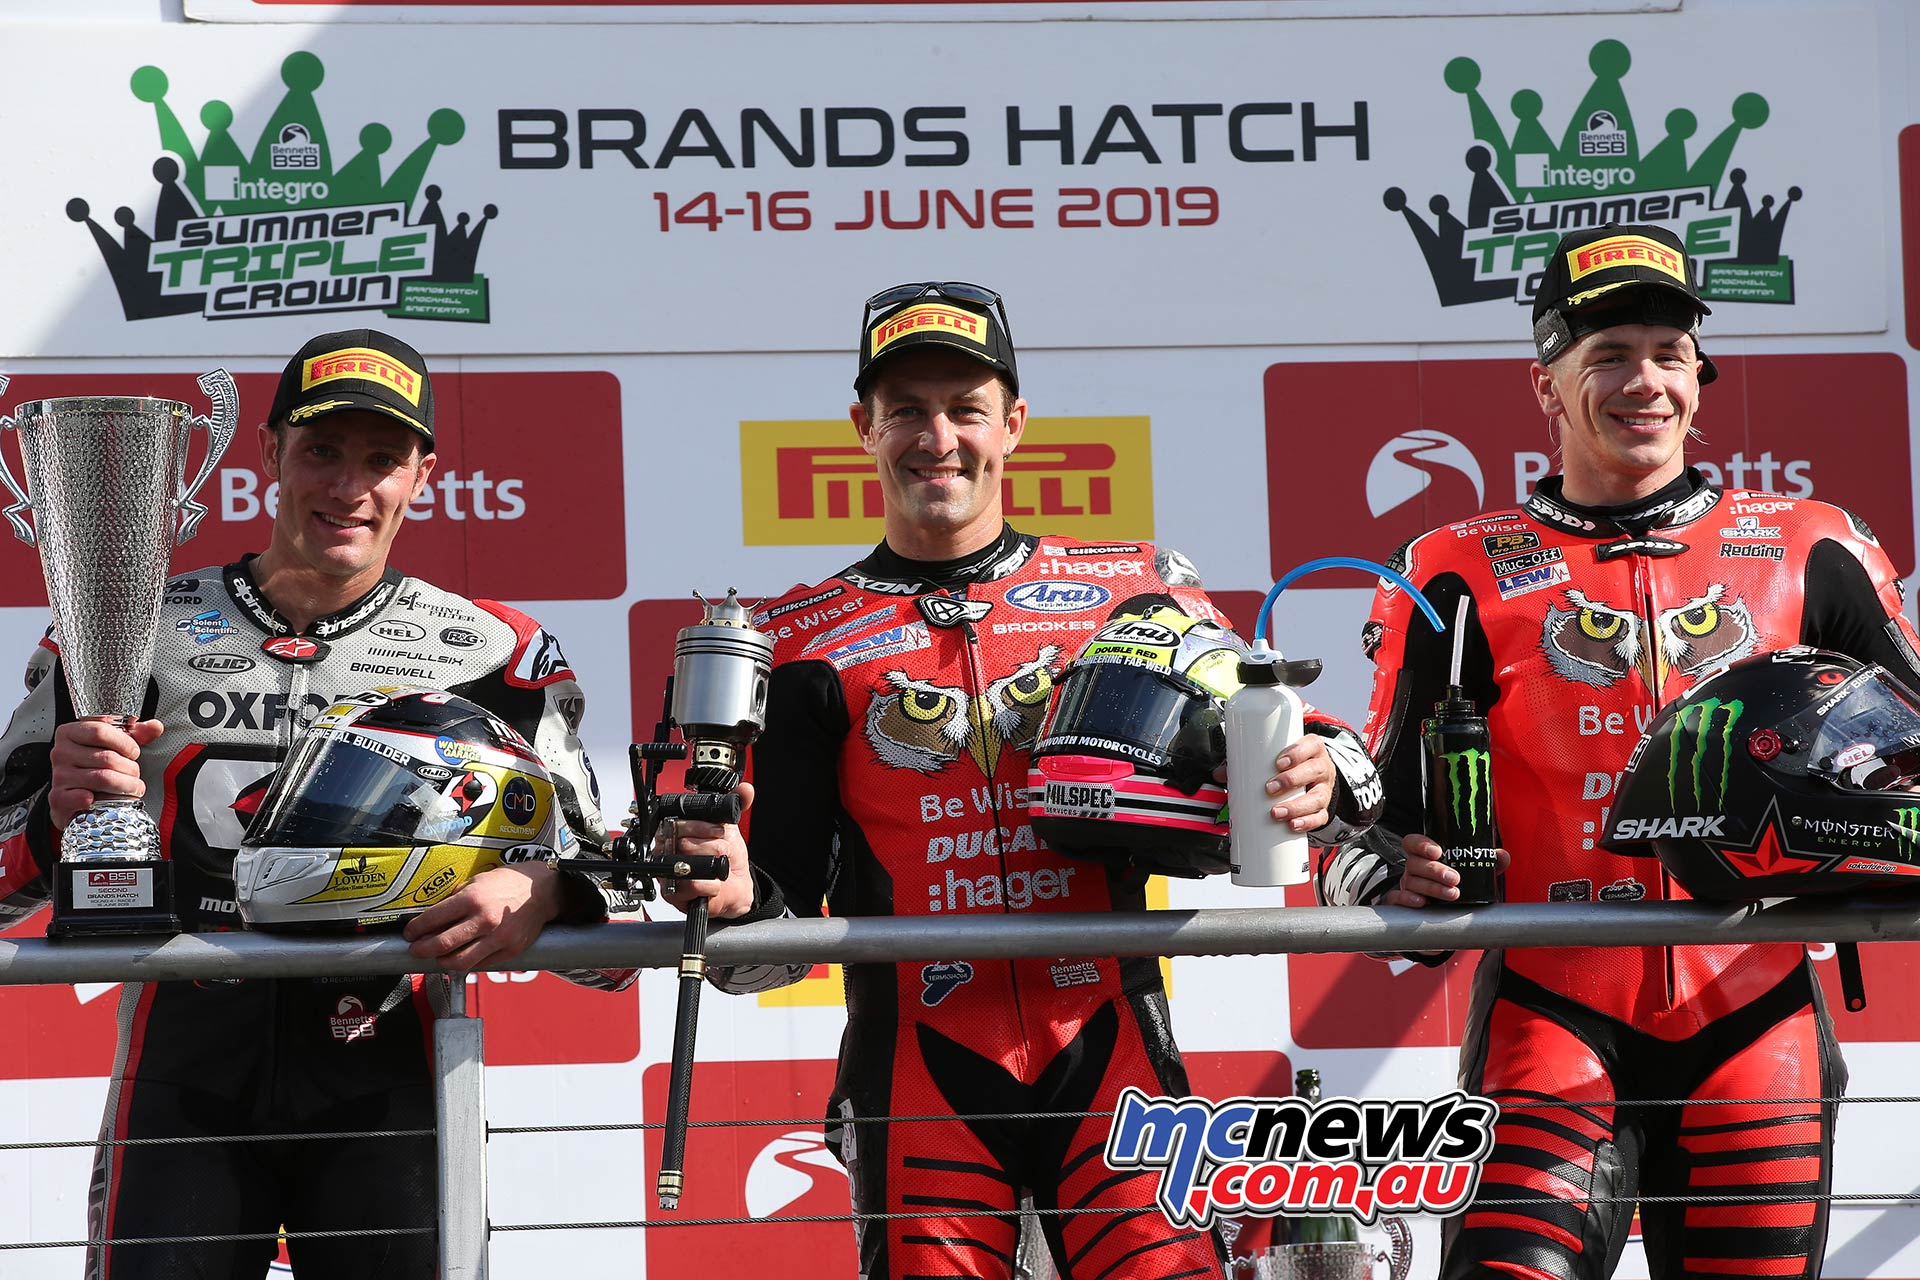 BSB RNd BrandsHatch SBK Race Podium Brookes Bridewell Redding A